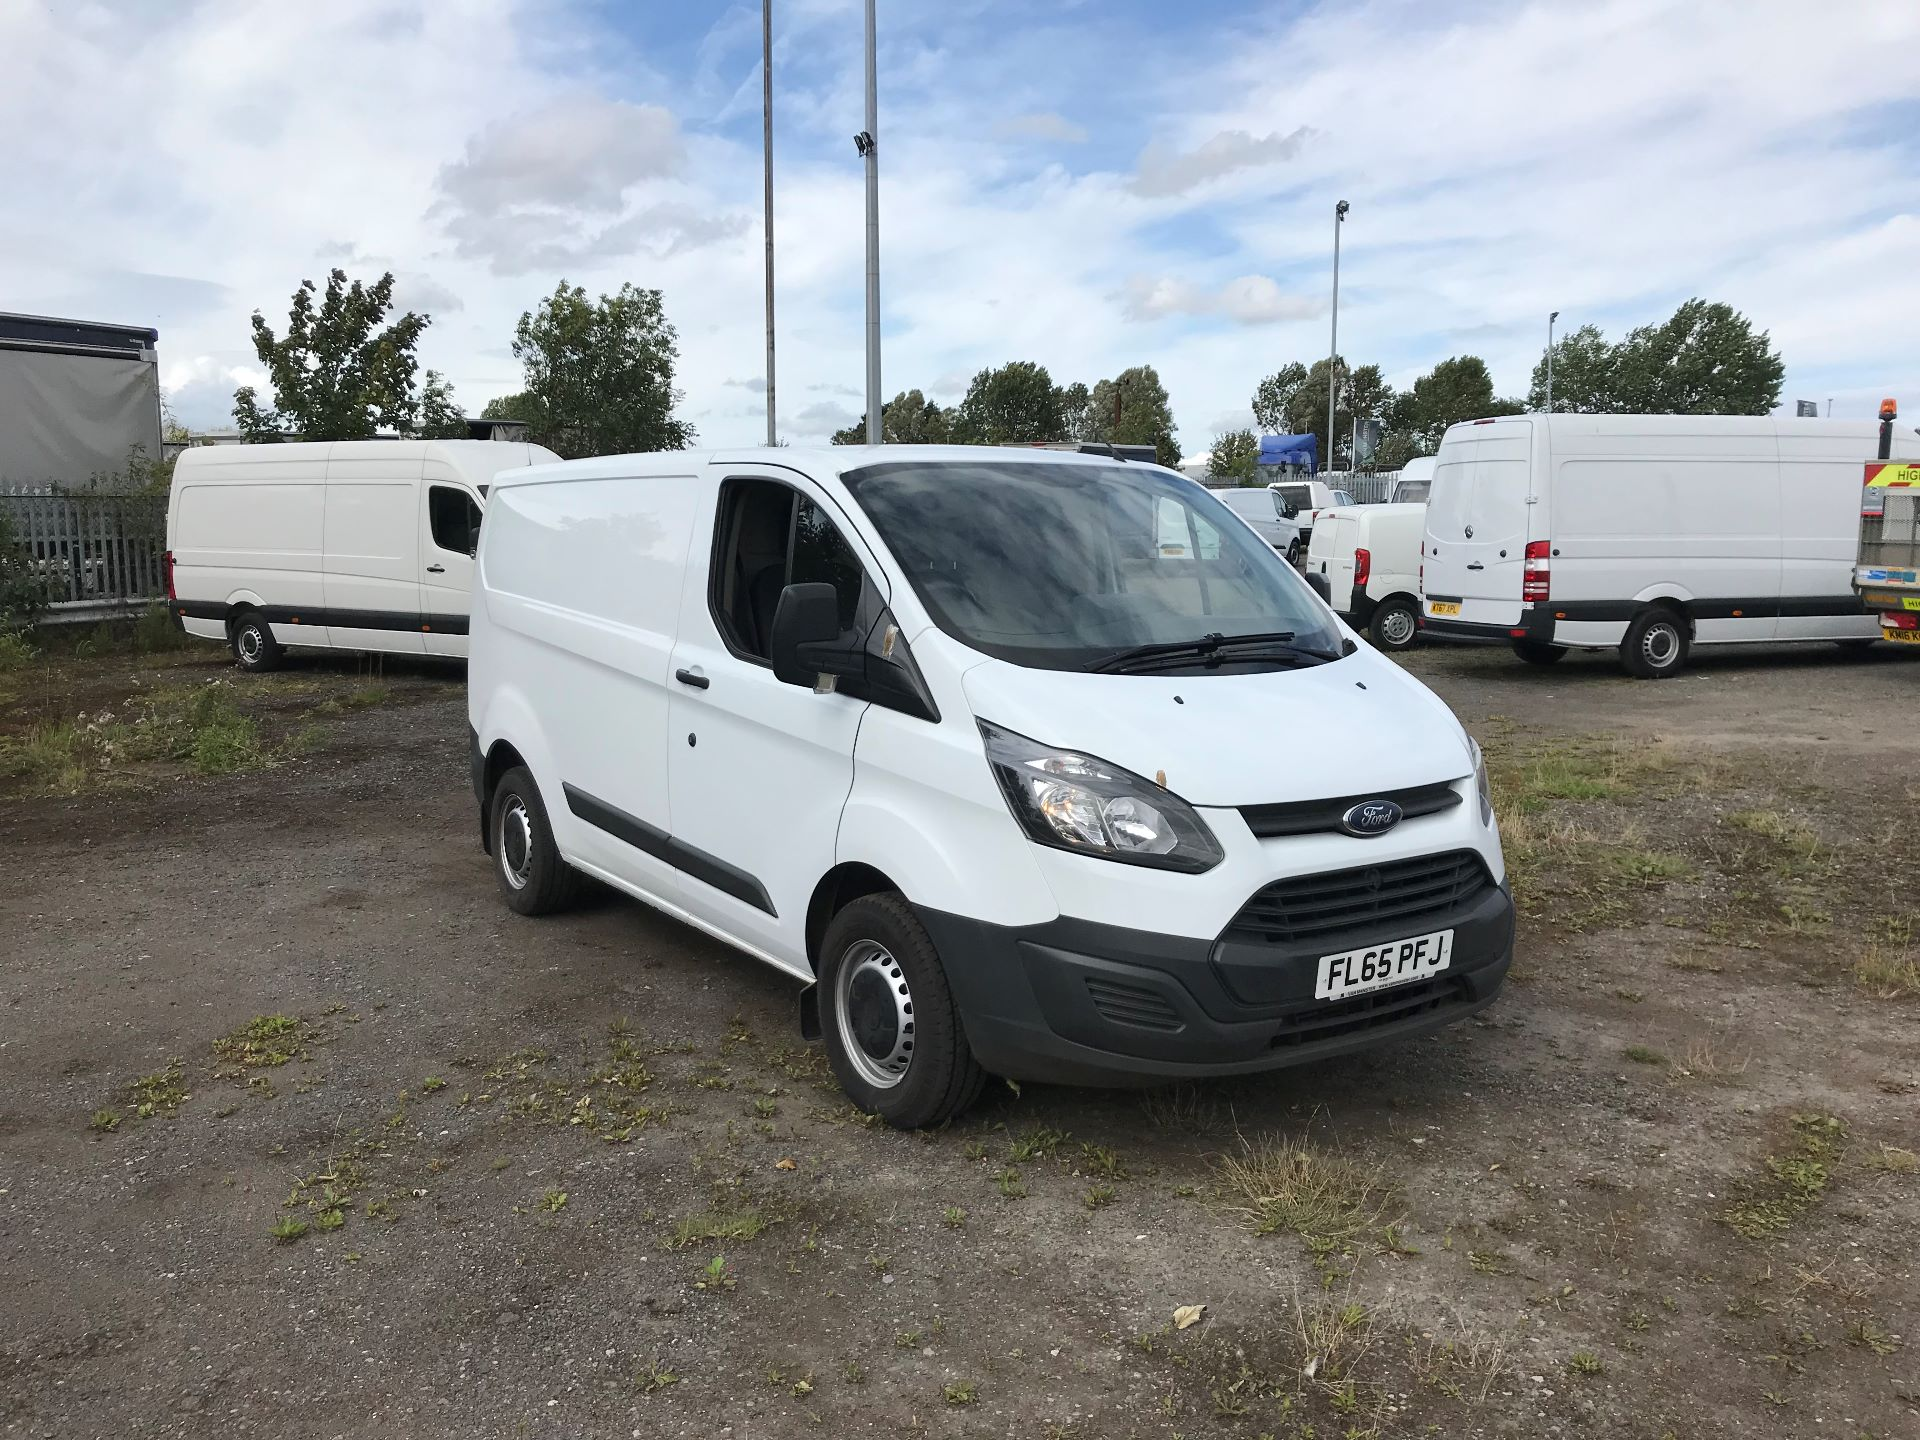 2015 Ford Transit Custom 290 L1 DIESEL FWD 2.2  TDCI 100PS LOW ROOF VAN EURO 5 (FL65PFJ)